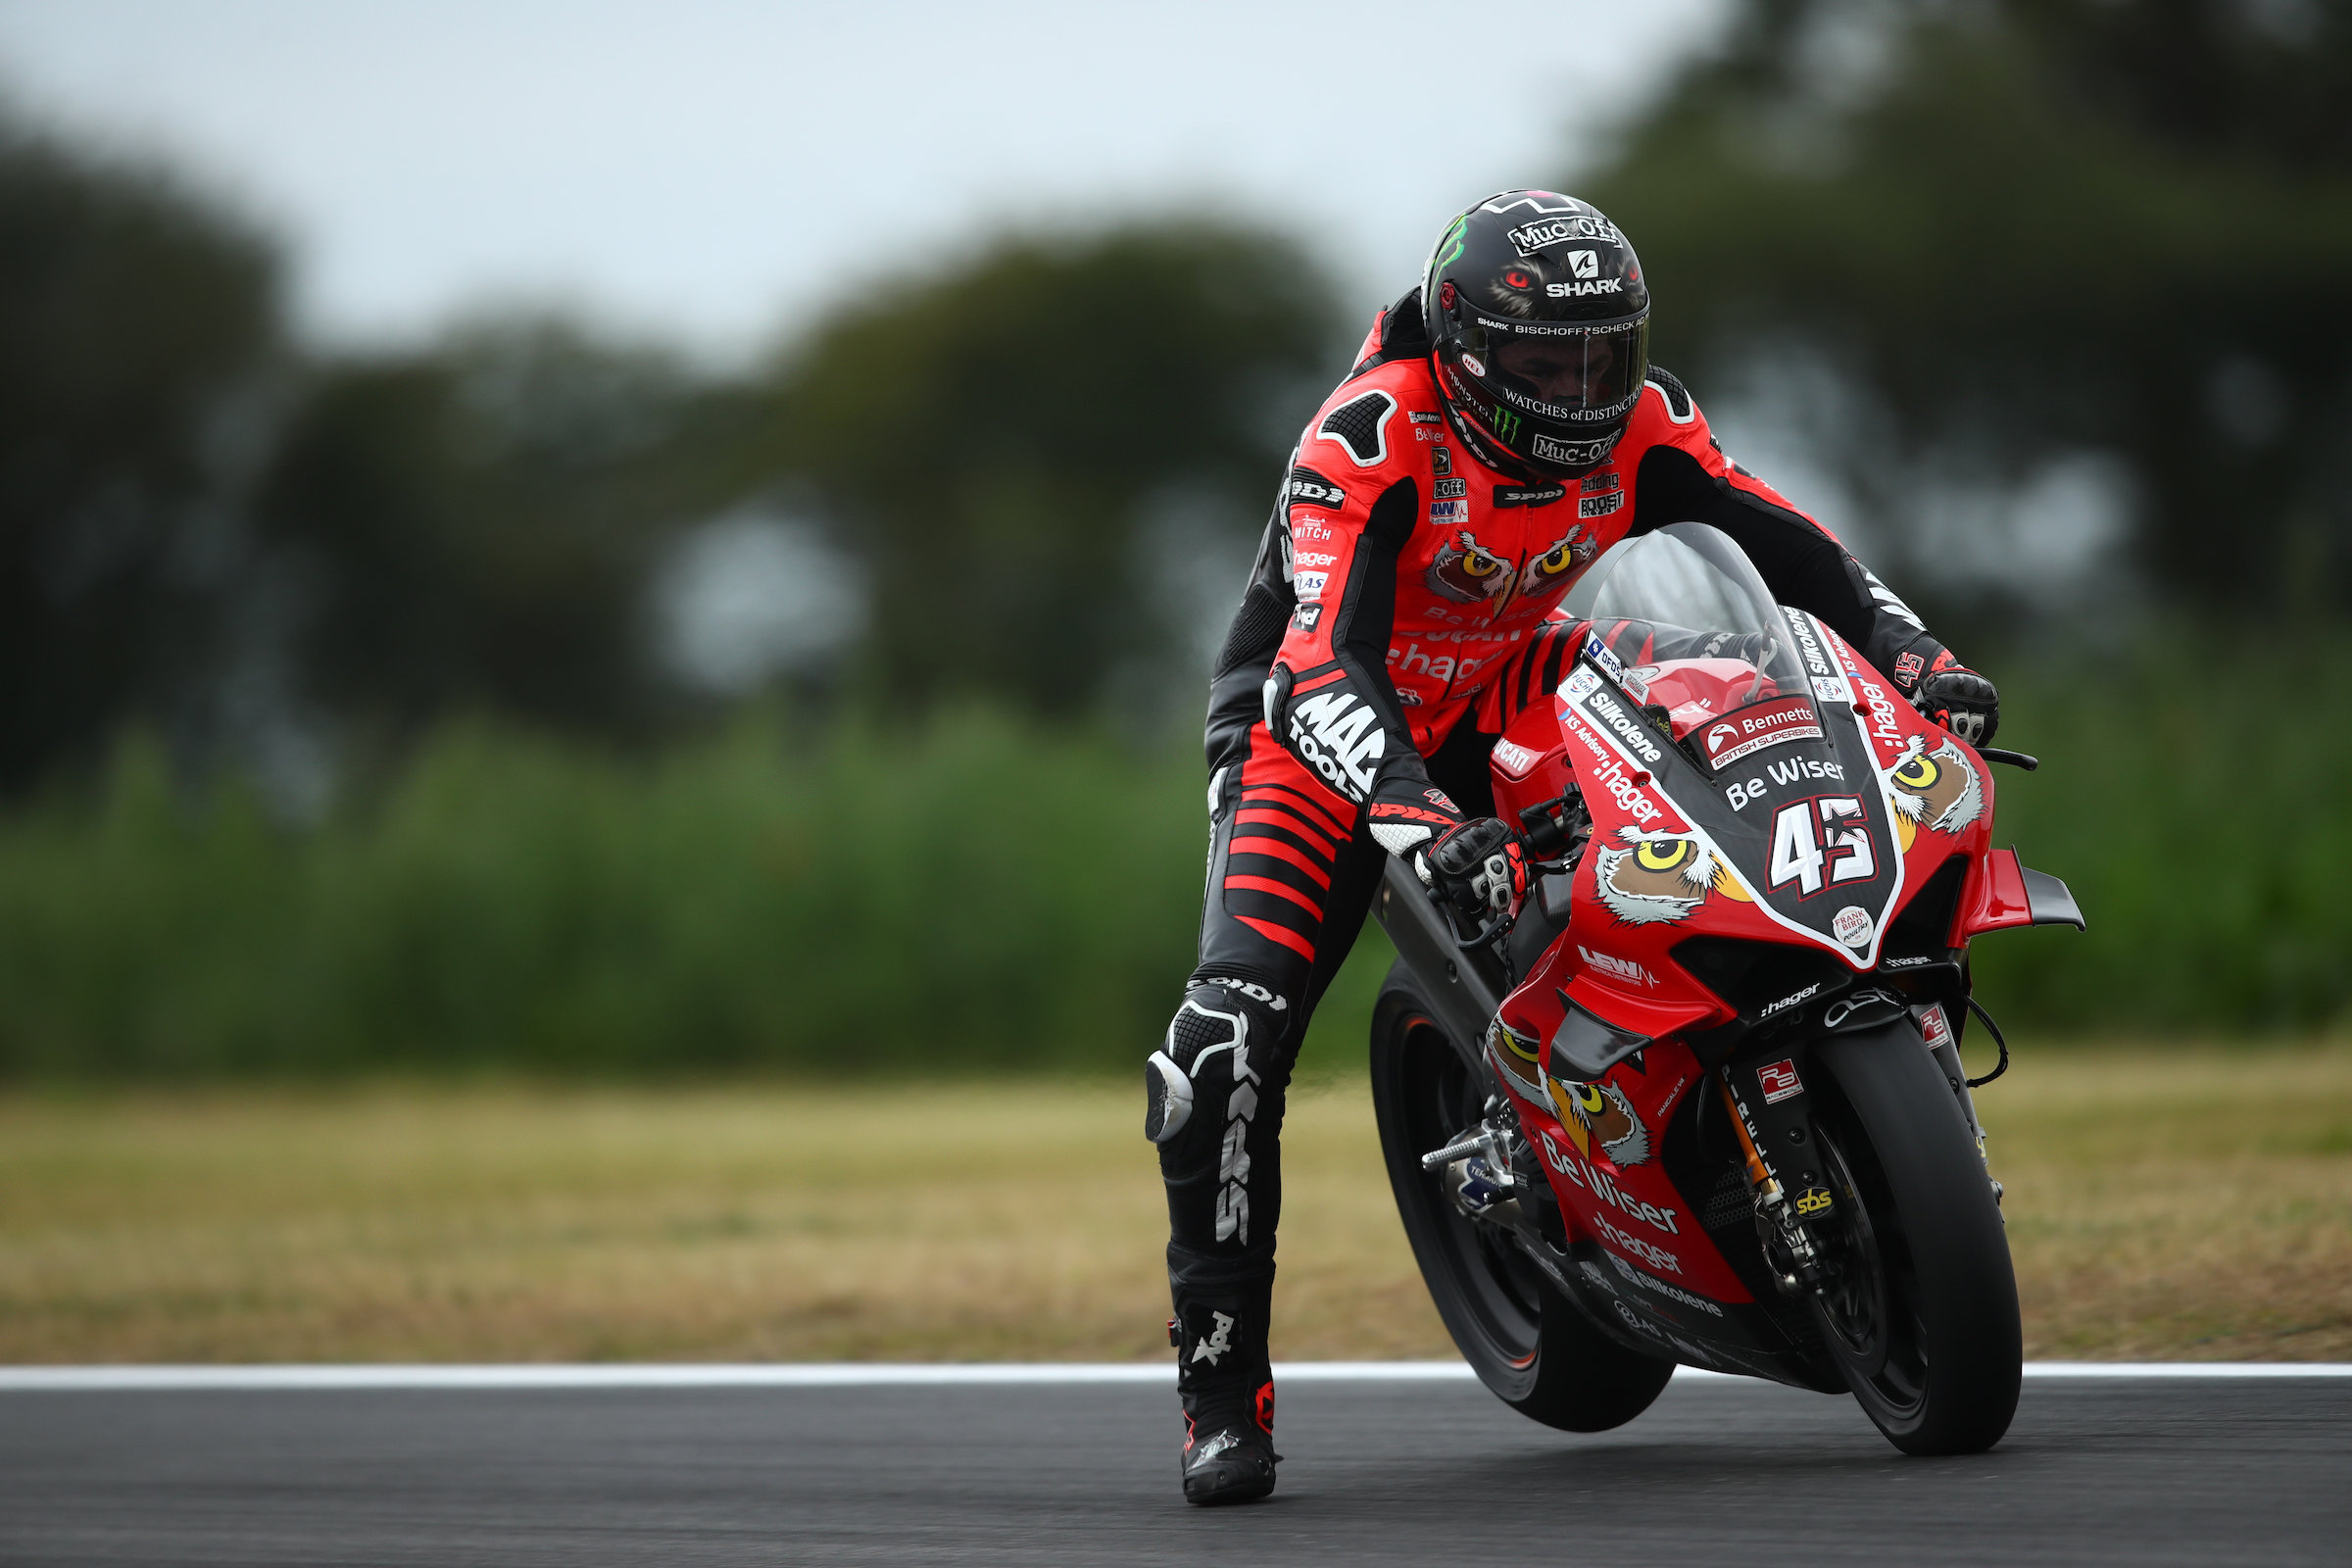 Scott Redding at BSB Snetterton 2019